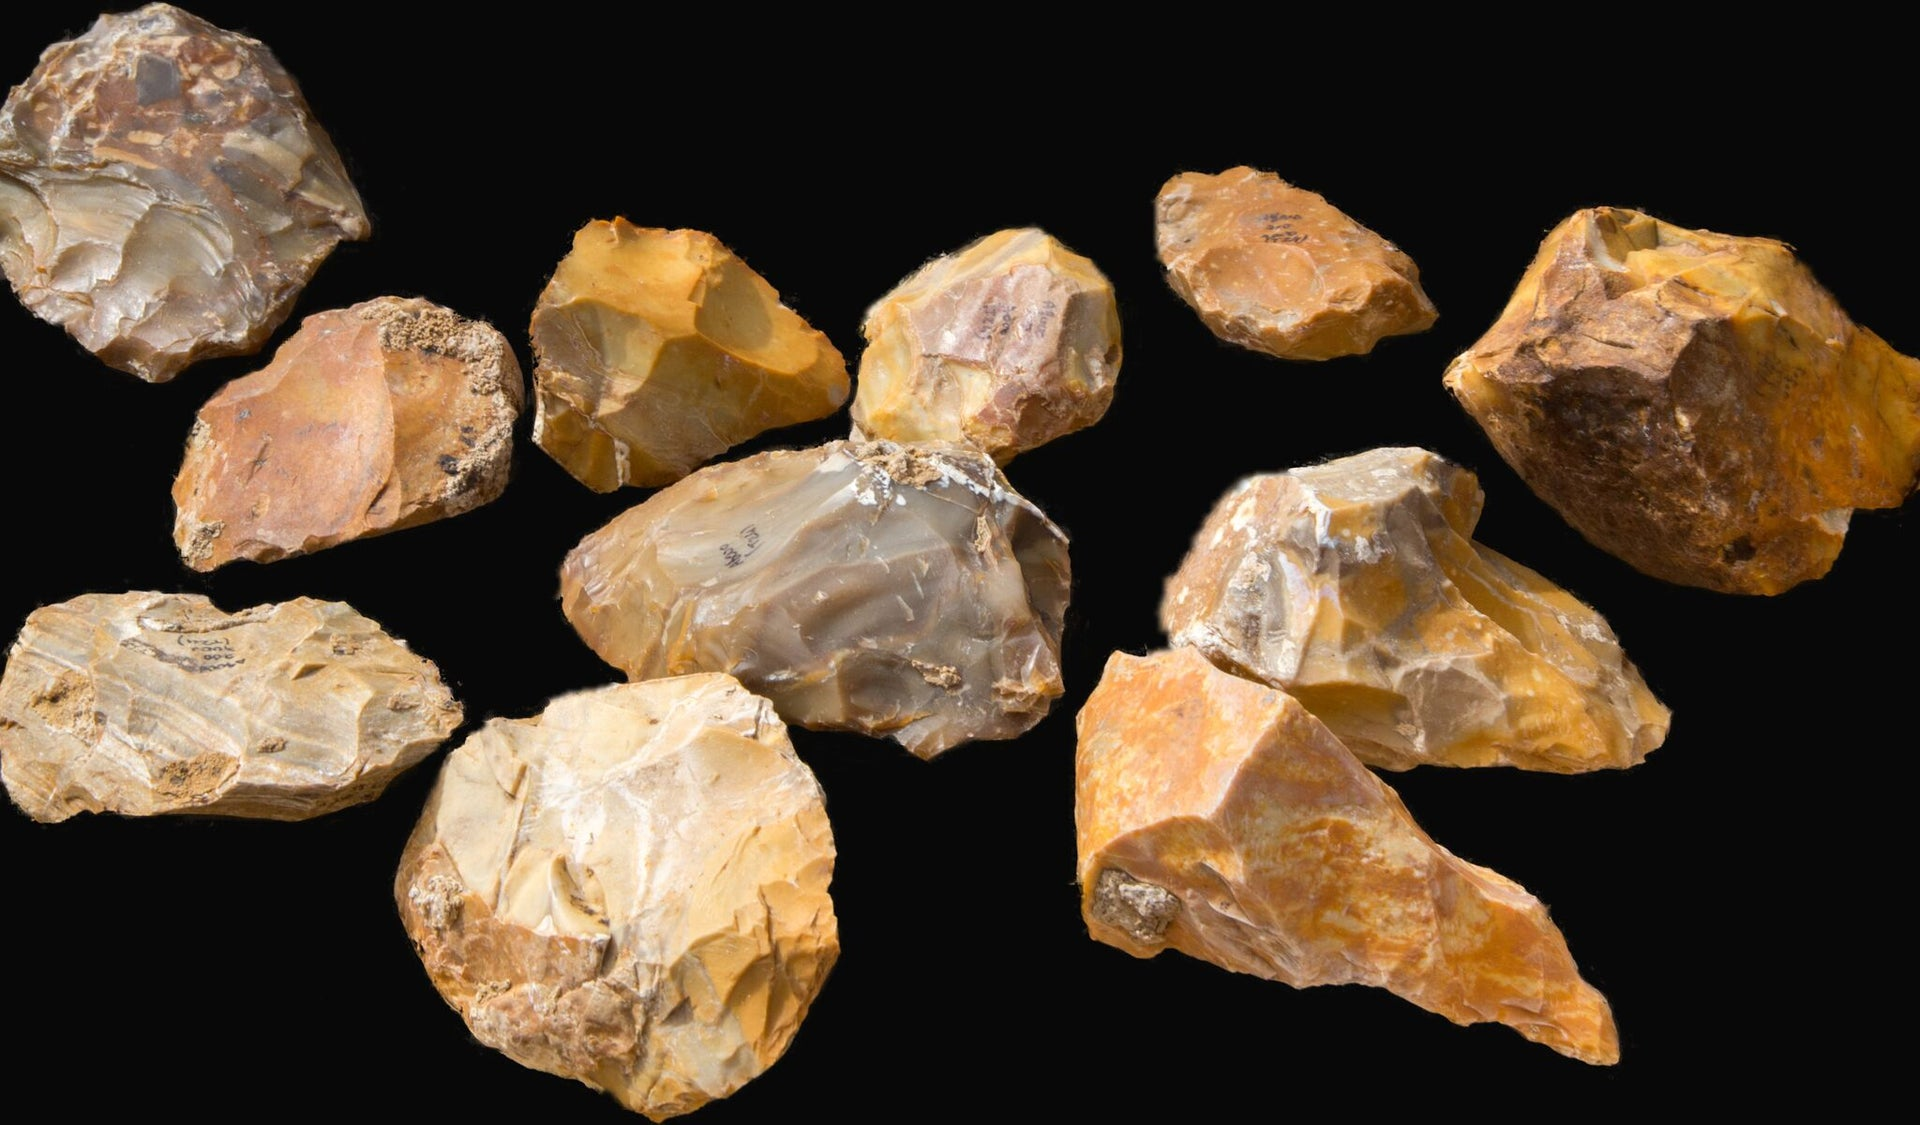 Hundreds of hand axes were uncovered in the excavation by Jaljulya, demonstrating technique that begs the question: Did man begin to develop much earlier than thought?